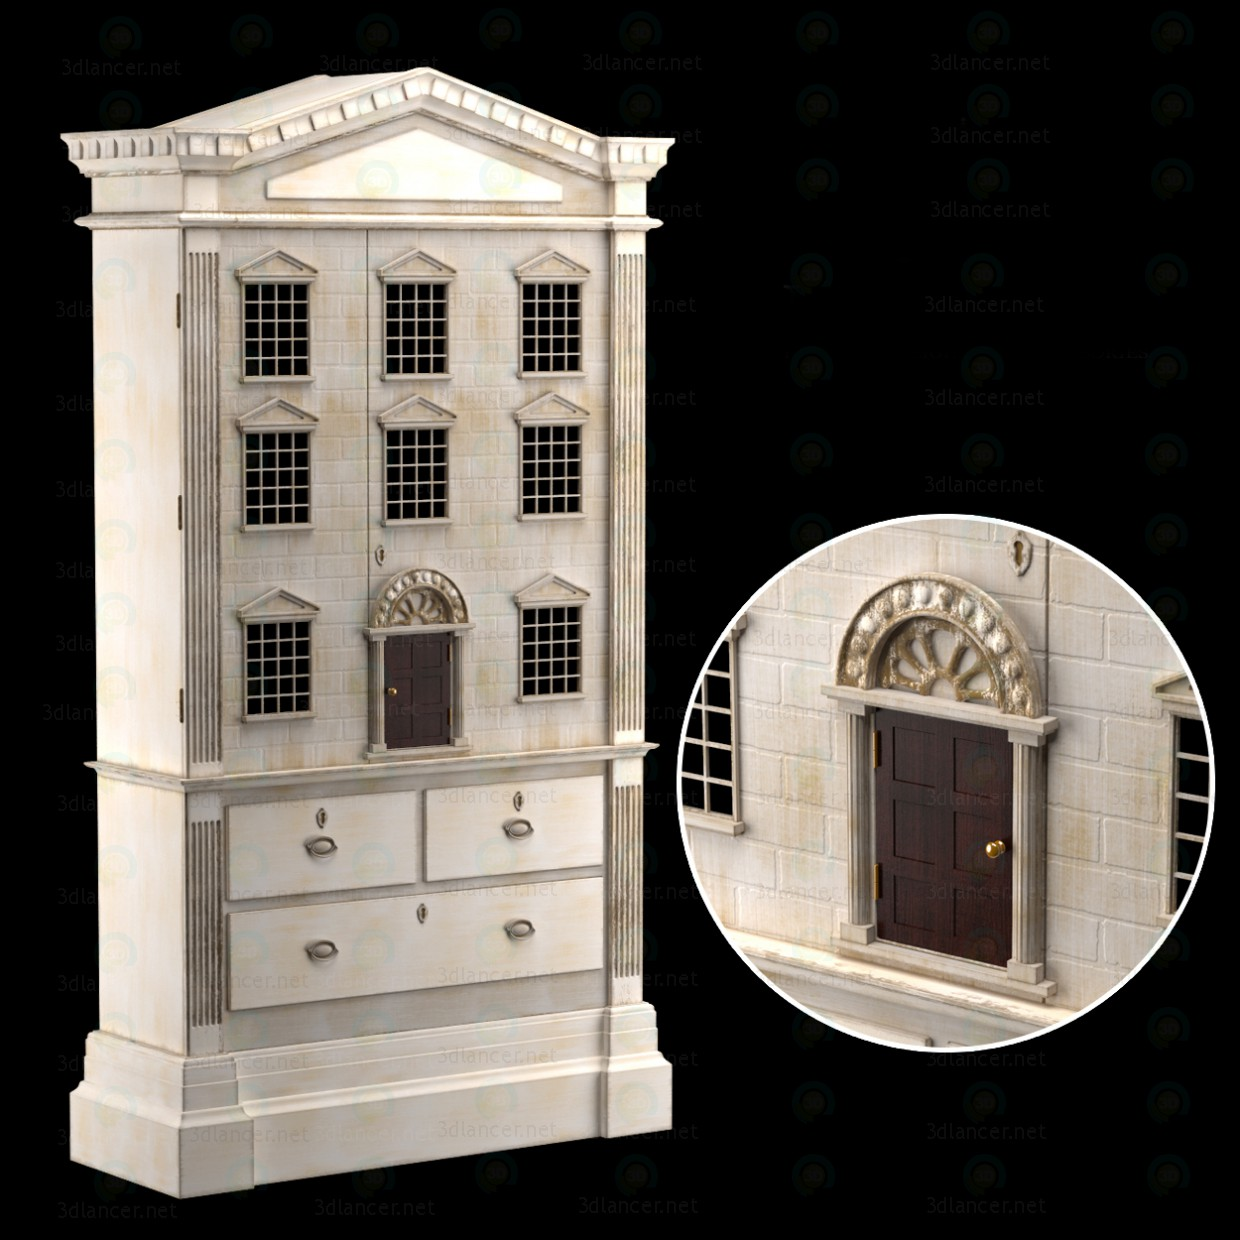 3d DOLLS HOUSE CABINET model buy - render